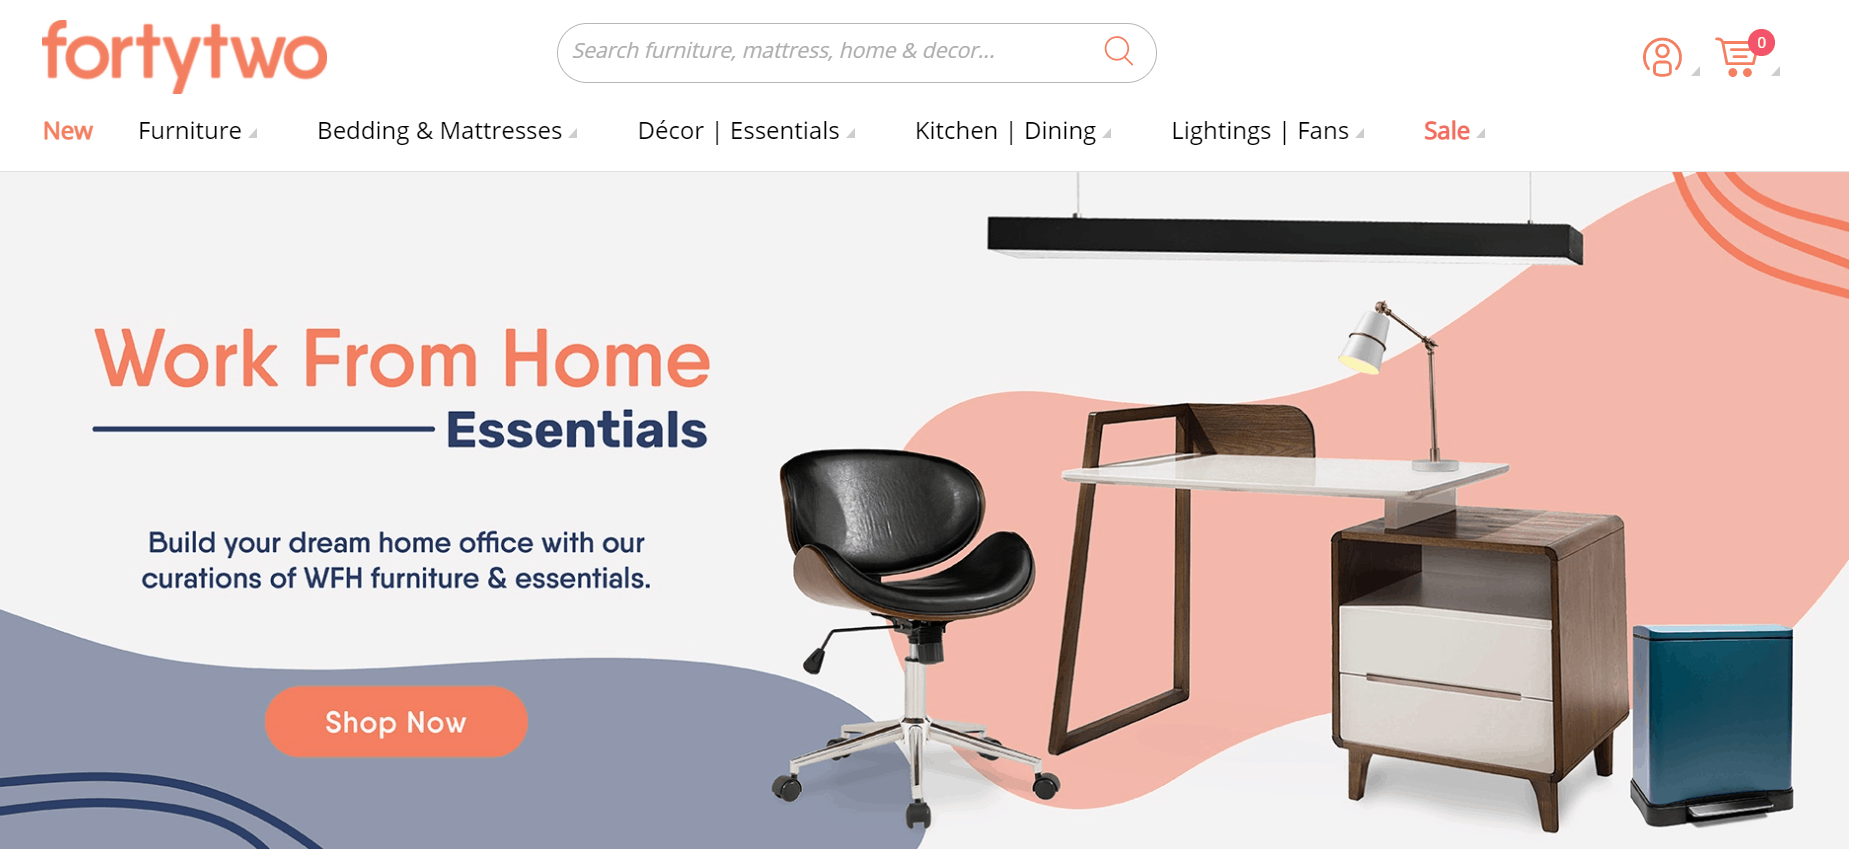 Fortytwo is Top 10 Affordable Online Furniture Stores in Singapore, Furniture & Home Décor, online home furnishing and lifestyle shopping site, affordable Online Furniture Stores In Singapore For Lazy Homeowners, furniture for hdb